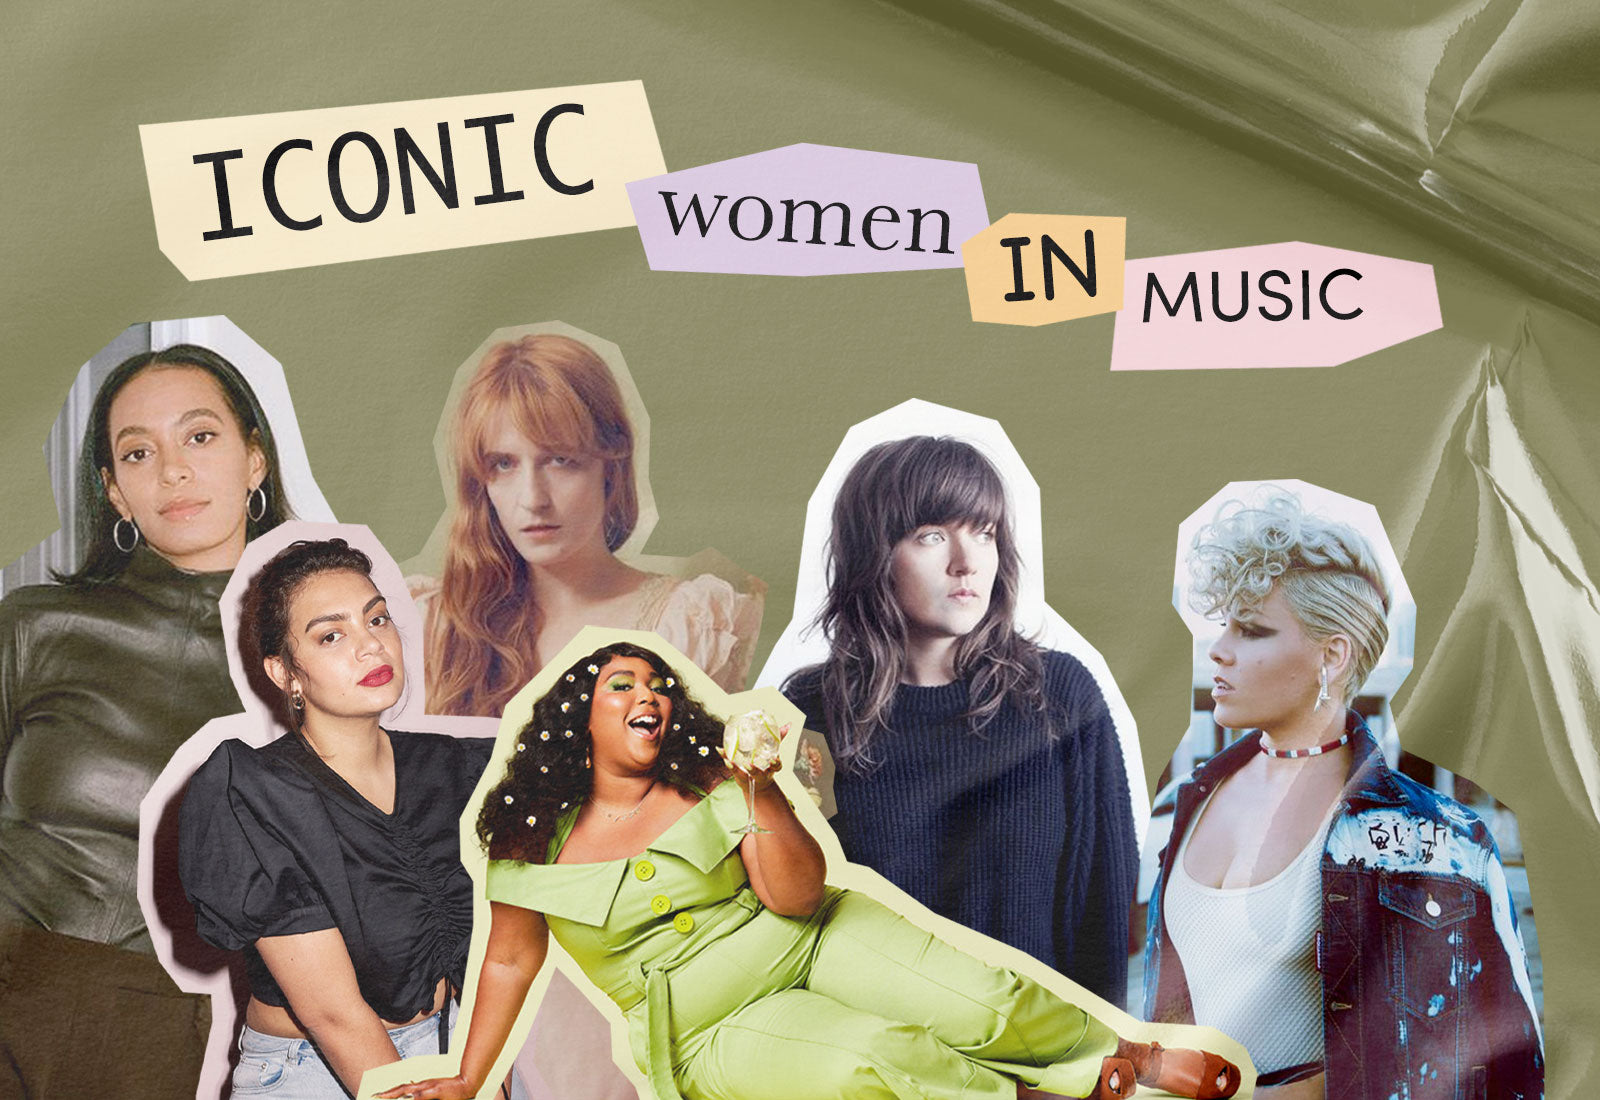 Iconic Women In Music